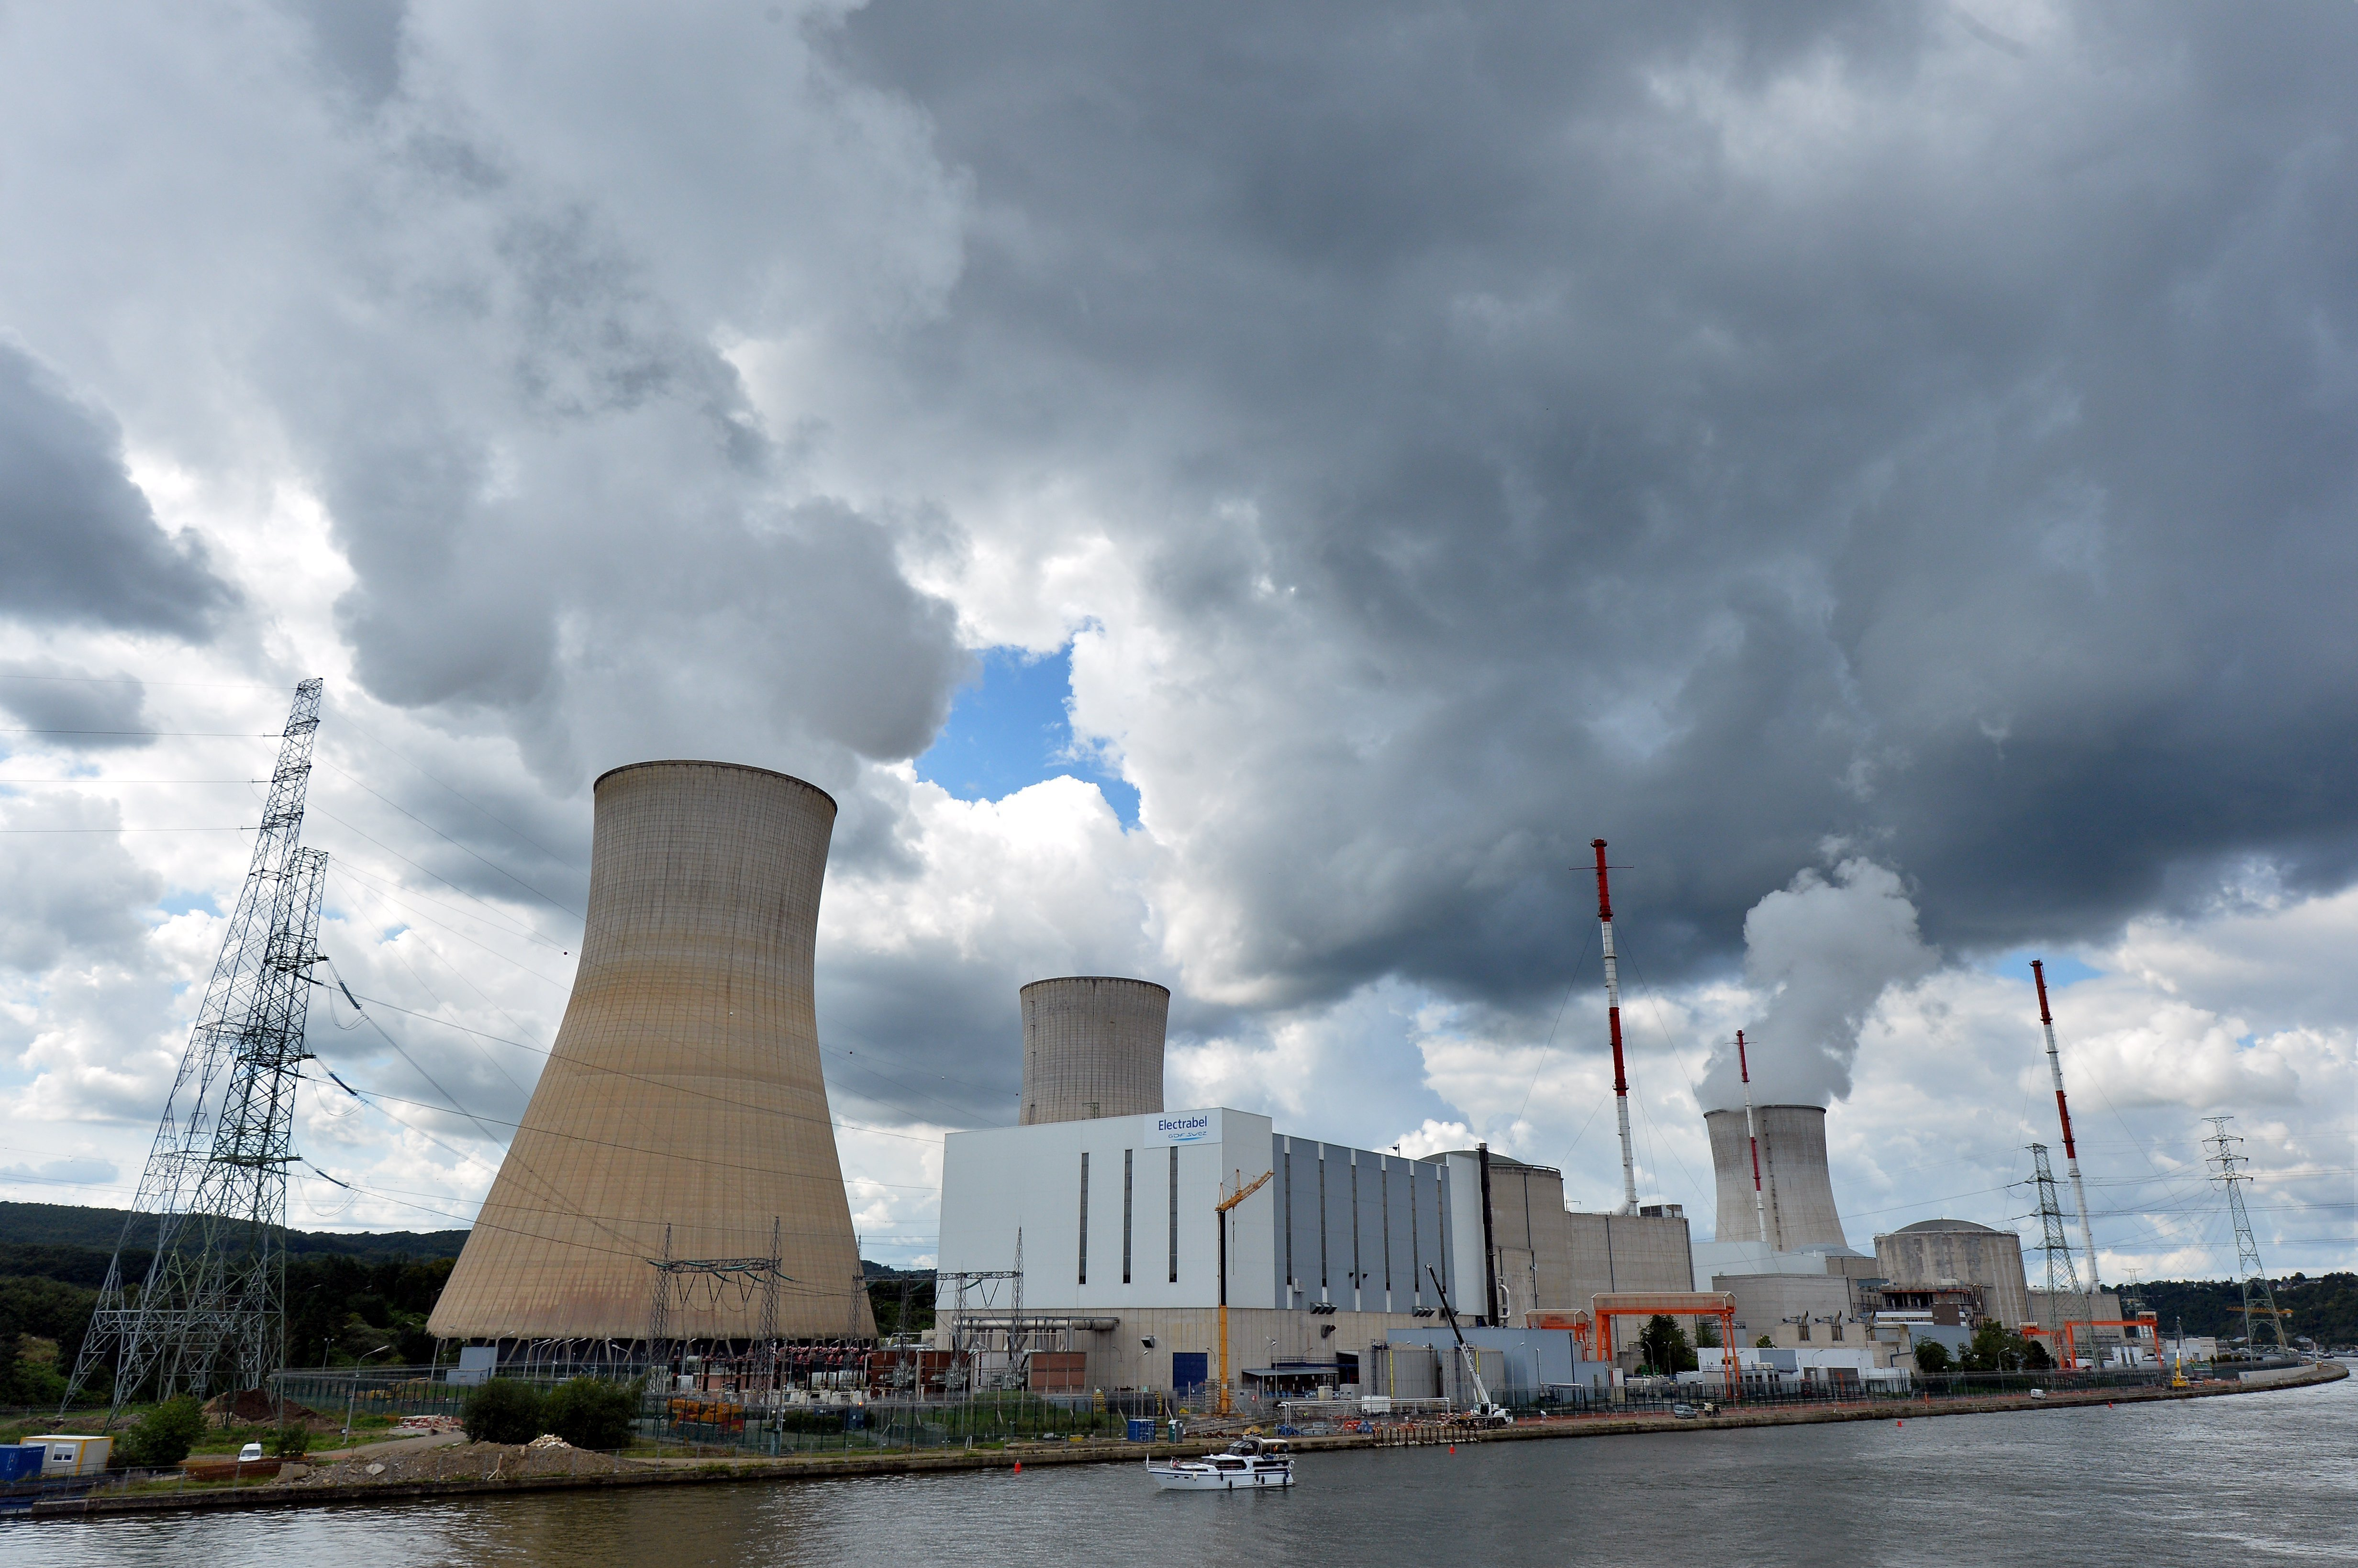 A photo taken on August 20, 2014 shows a nuclear power plant, in Tihange, Belgium.